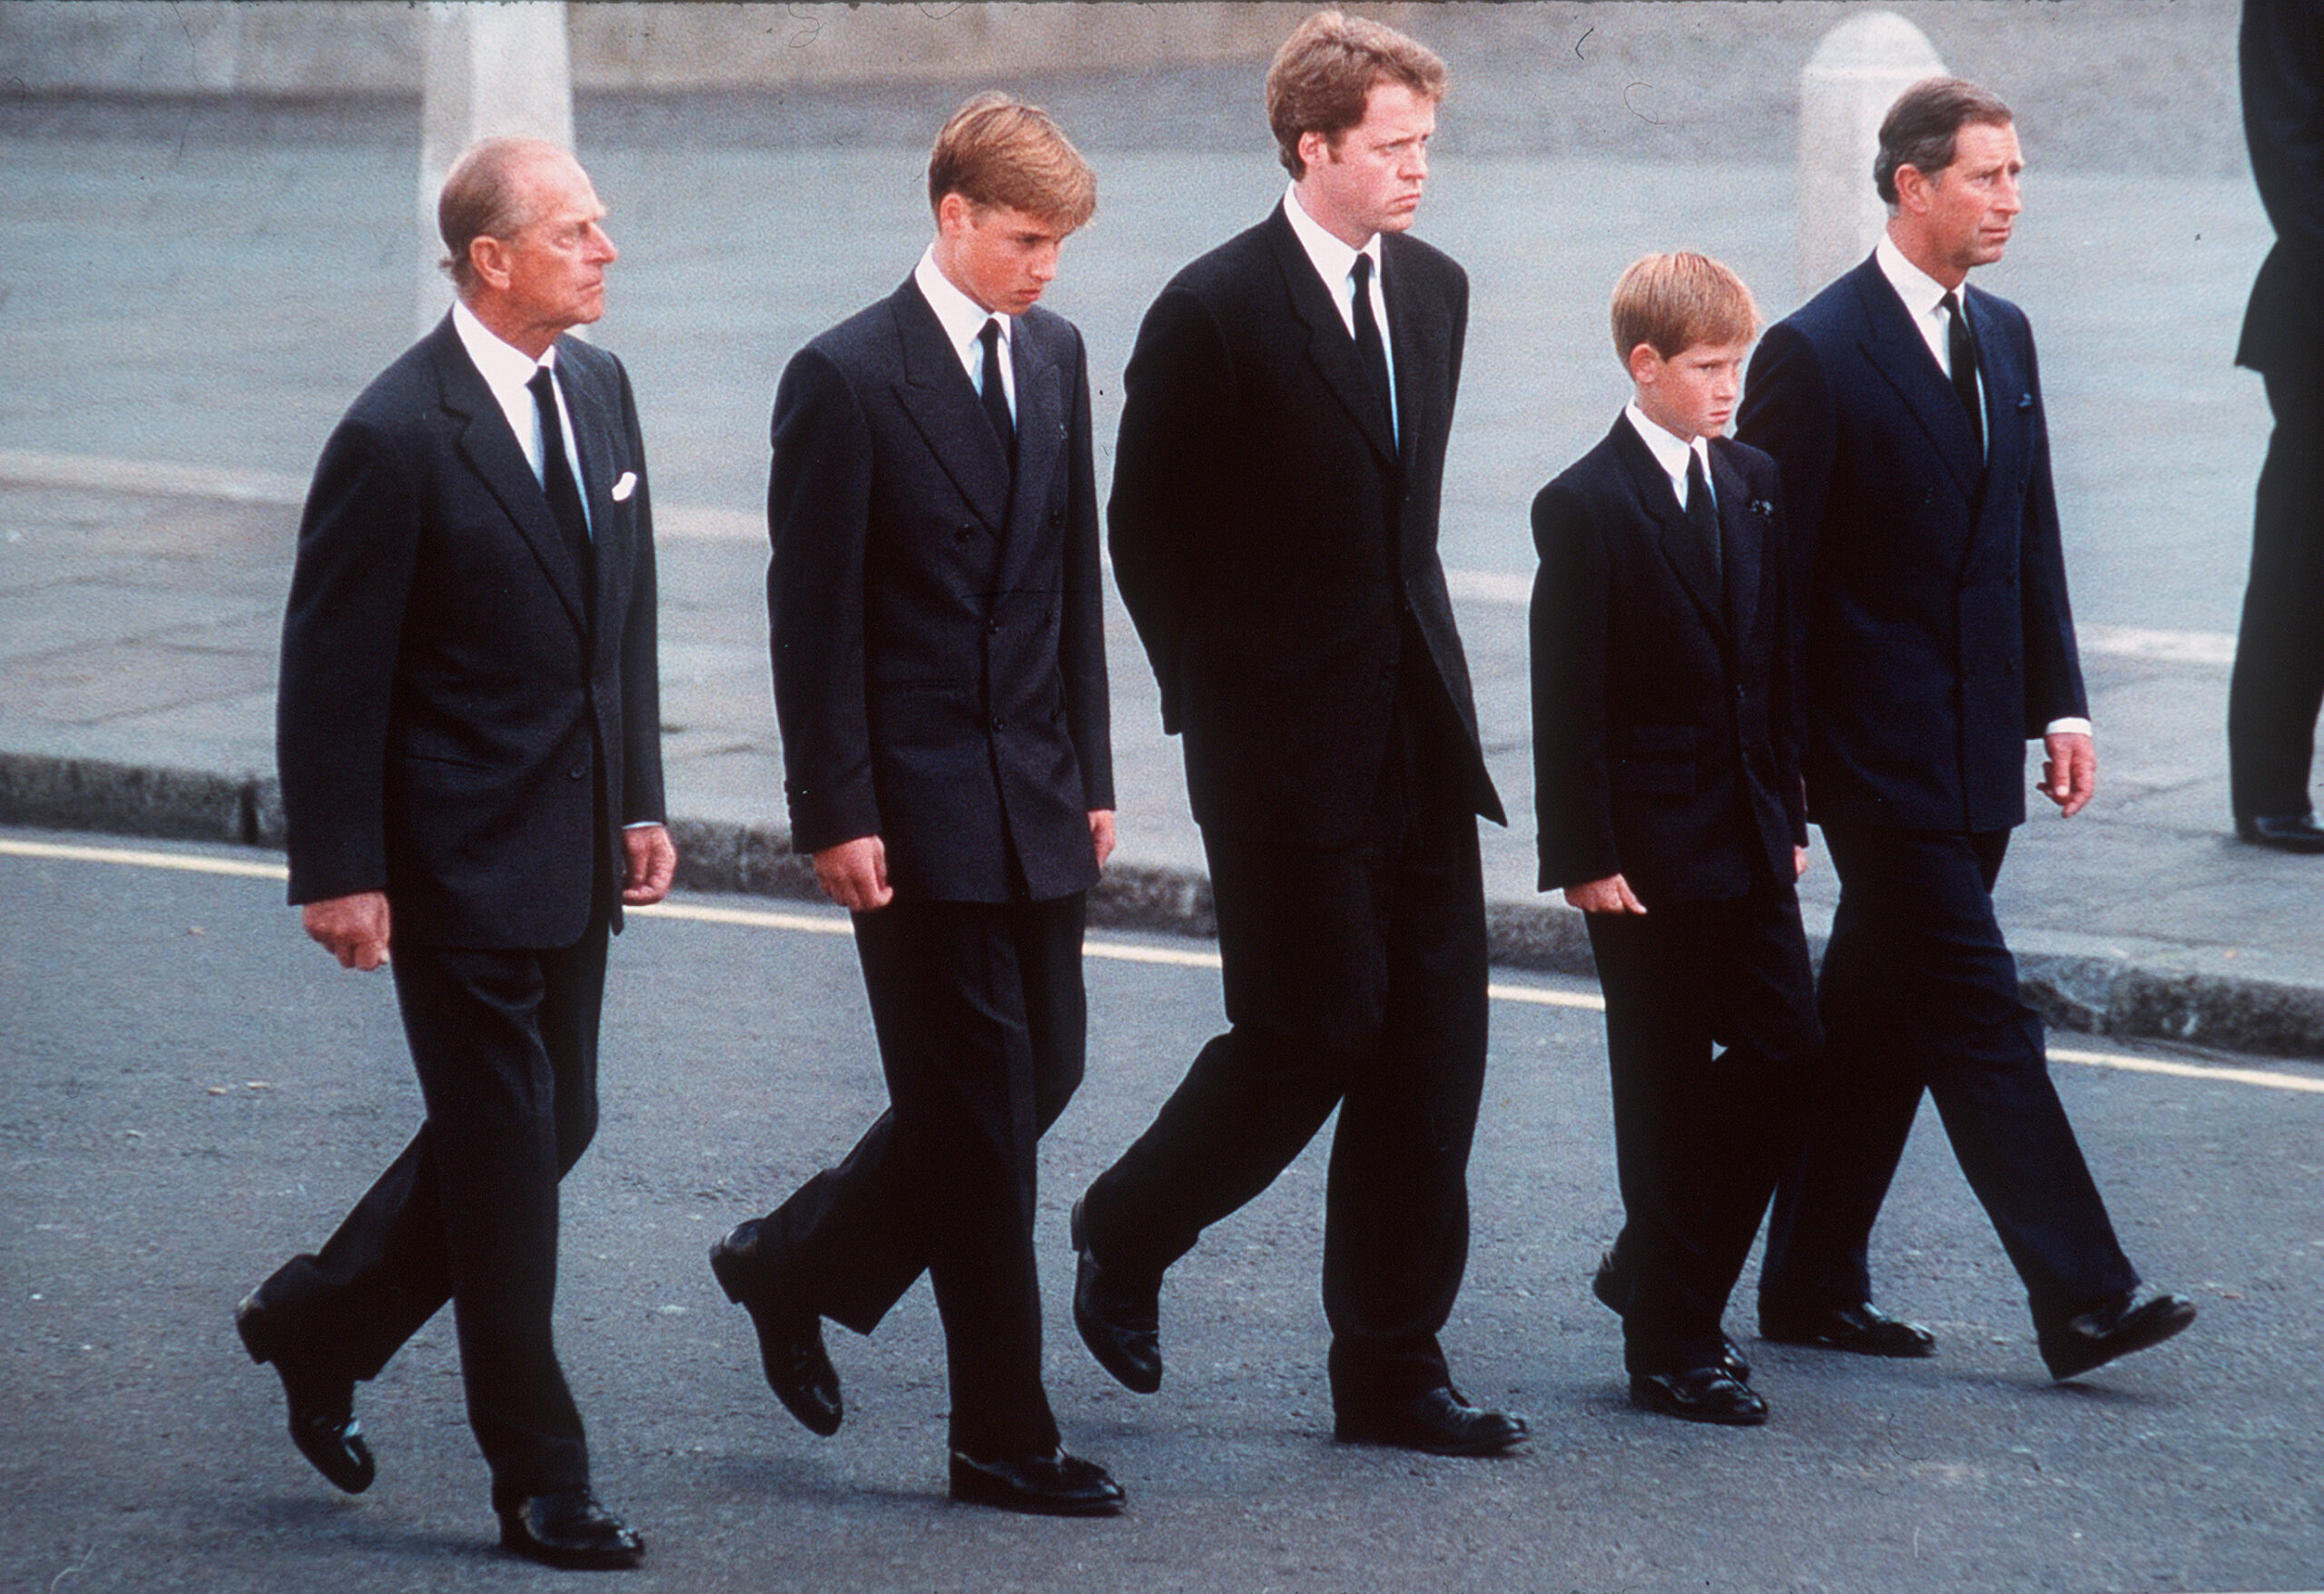 Prince Philip, the Duke of Edinburgh, Prince William, Earl Spencer, Prince Harry and Prince Charles, the Prince of Wales follow the coffin of Diana, Princess of Wales, London, England, September 6, 1997. The funeral took place seven days after she was killed in an automobile accident in Paris. Members of the royal family walked in the procession behind the coffin, as did 500 representatives of the charities associated with the Princess.  At least a million people lined the streets of central London to watch the procession from Kensington Palace to Westminster Abbey.